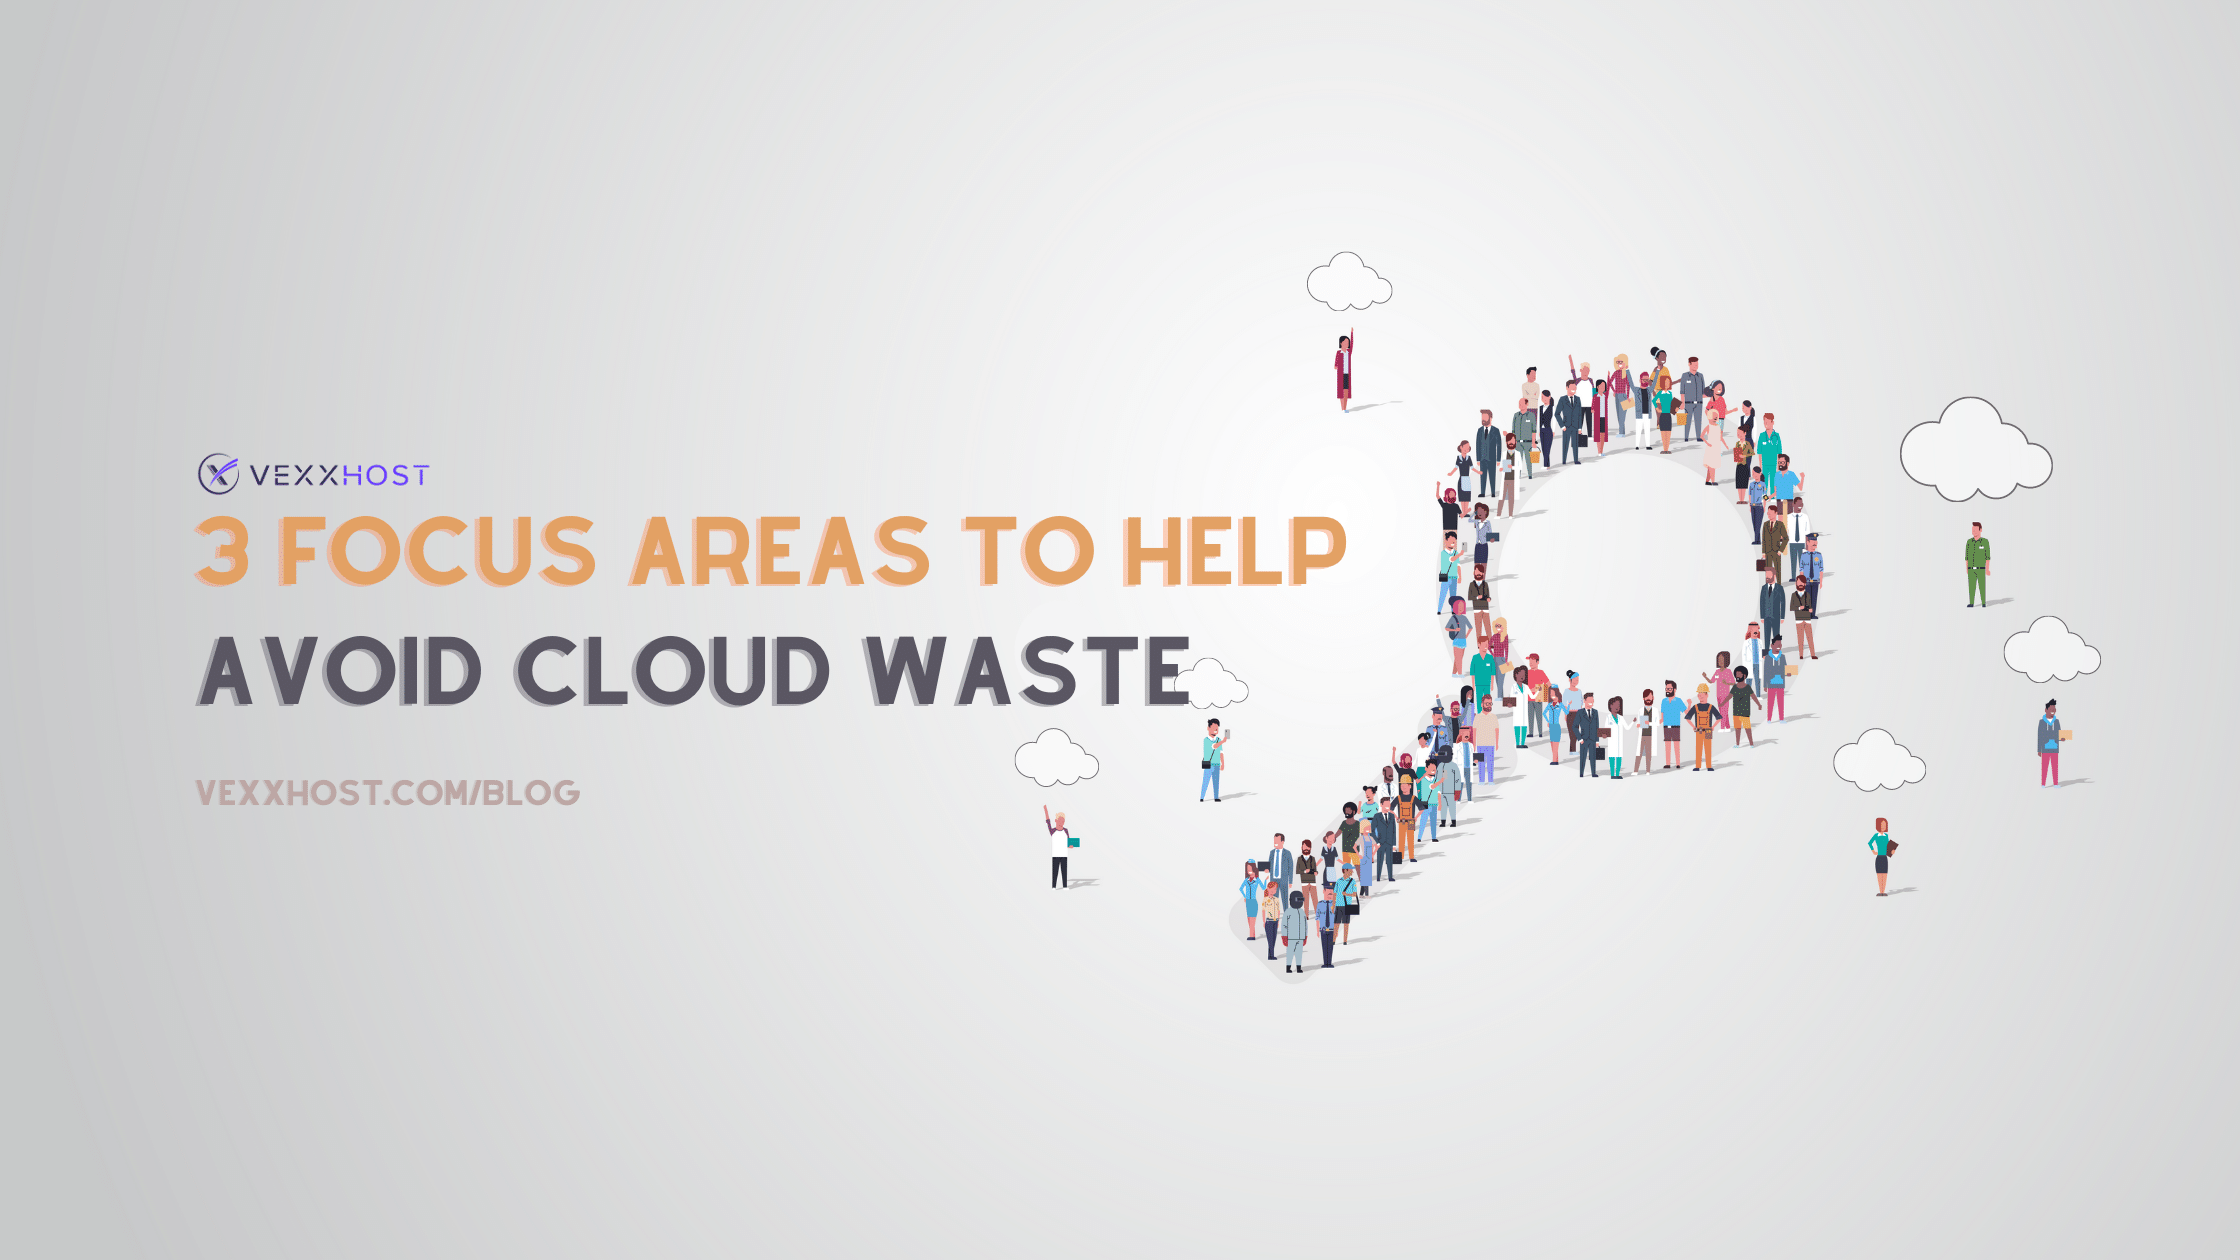 3 focus areas to help avoid cloud waste